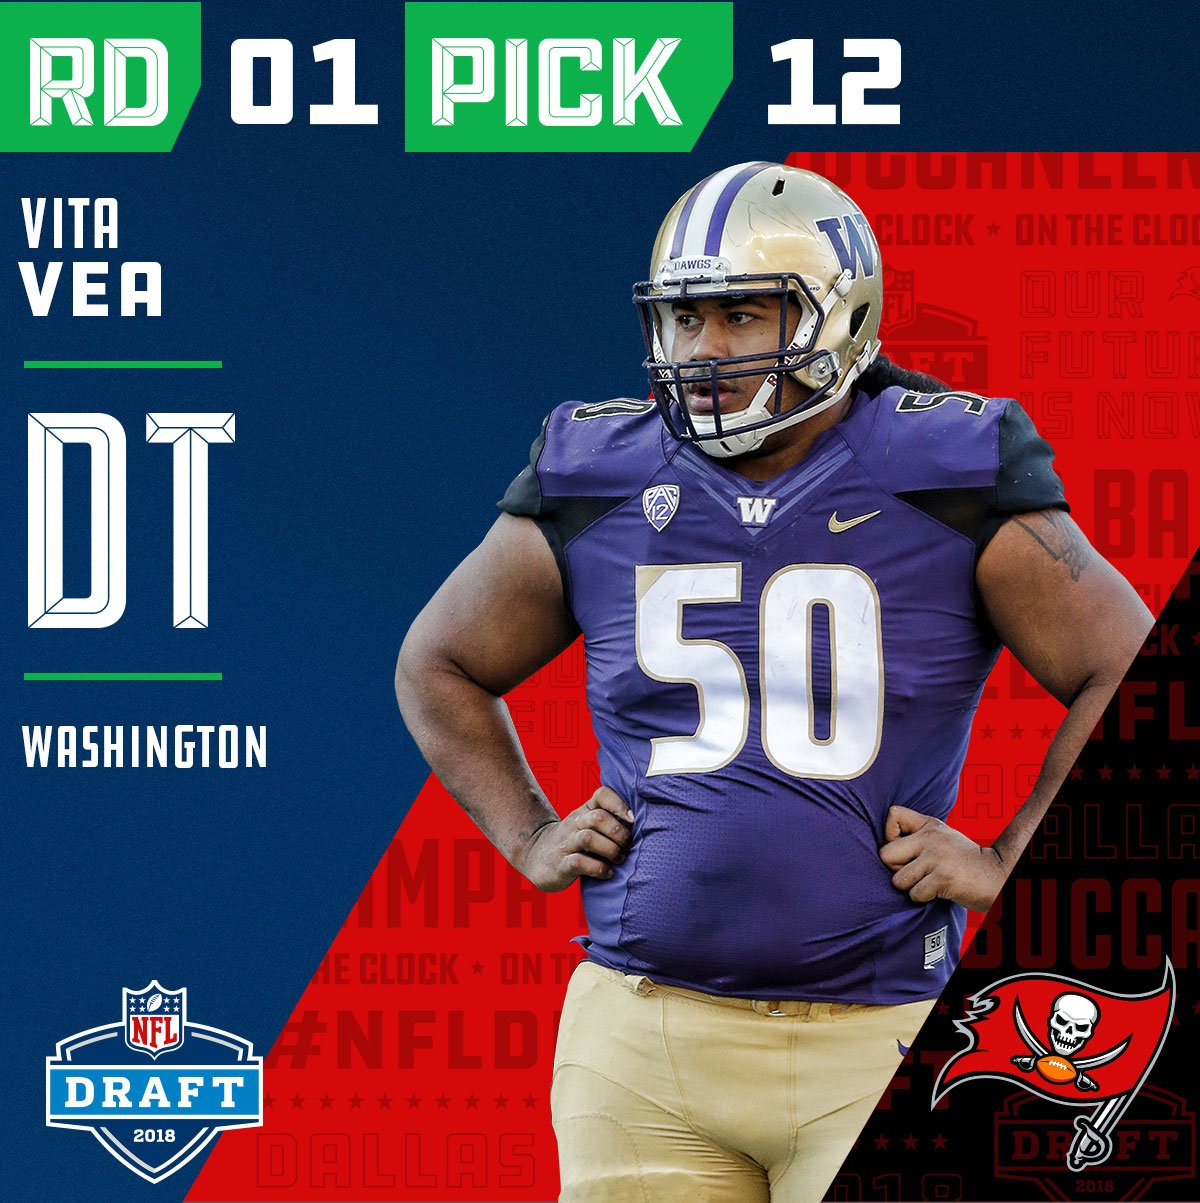 With the #12 overall pick in the 2018 #NFLDraft, the @Buccaneers select #VitaVea (@VitaVea)!   ��: NFLN/FOX/ESPN https://t.co/DxsOfac8l8